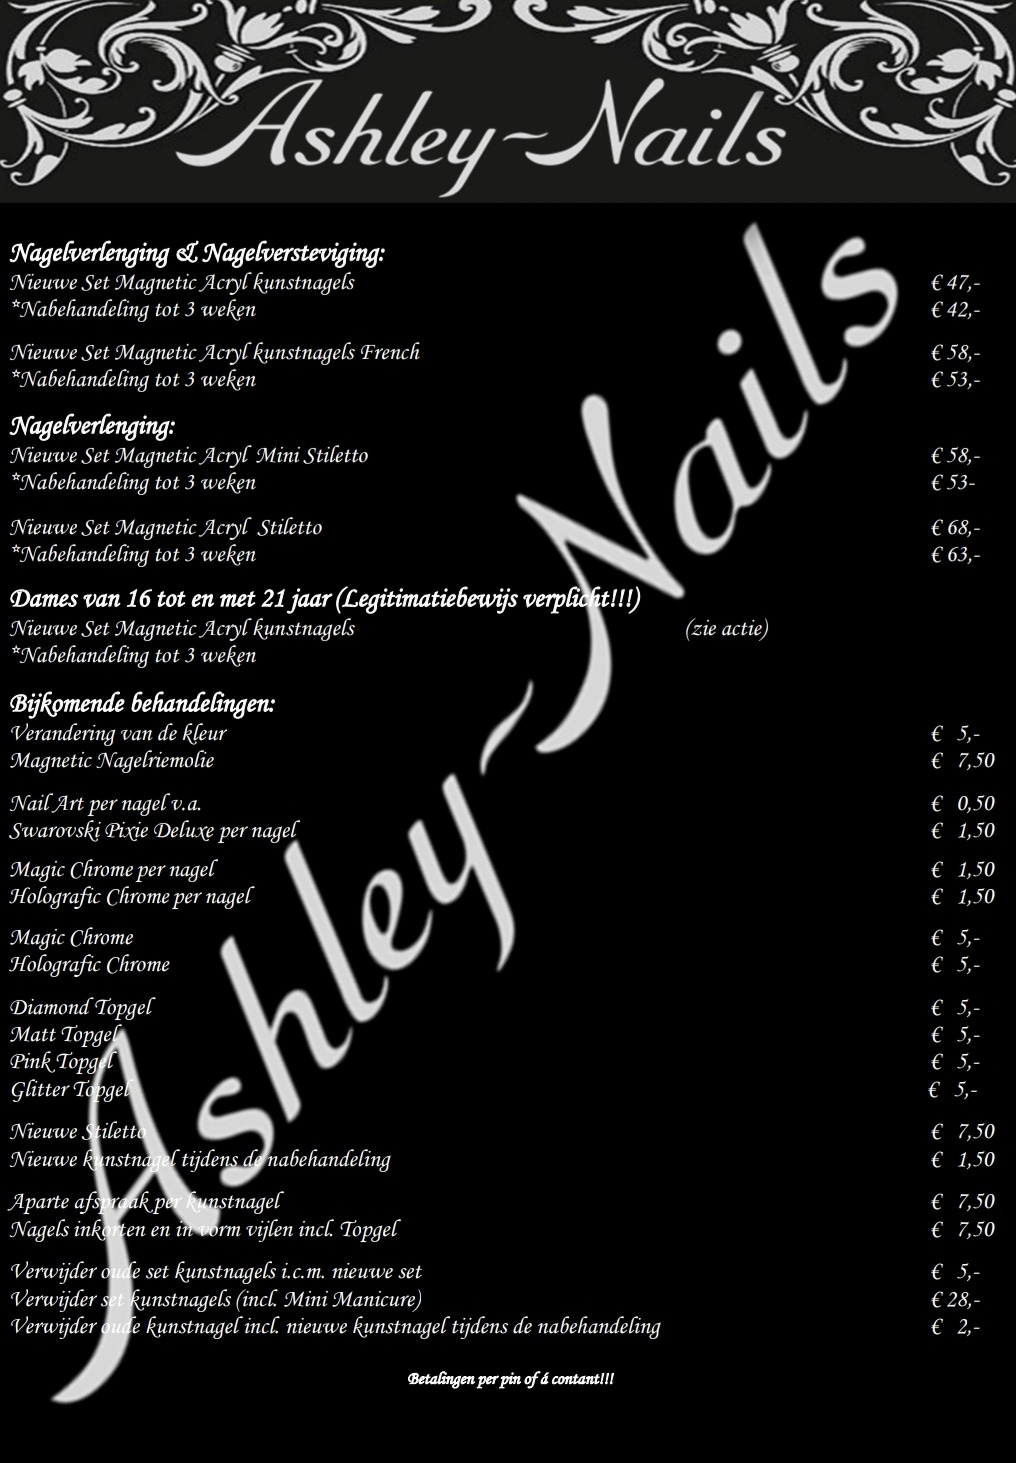 Prijslijst Ashley-Nails - nagelstudio Arnhem